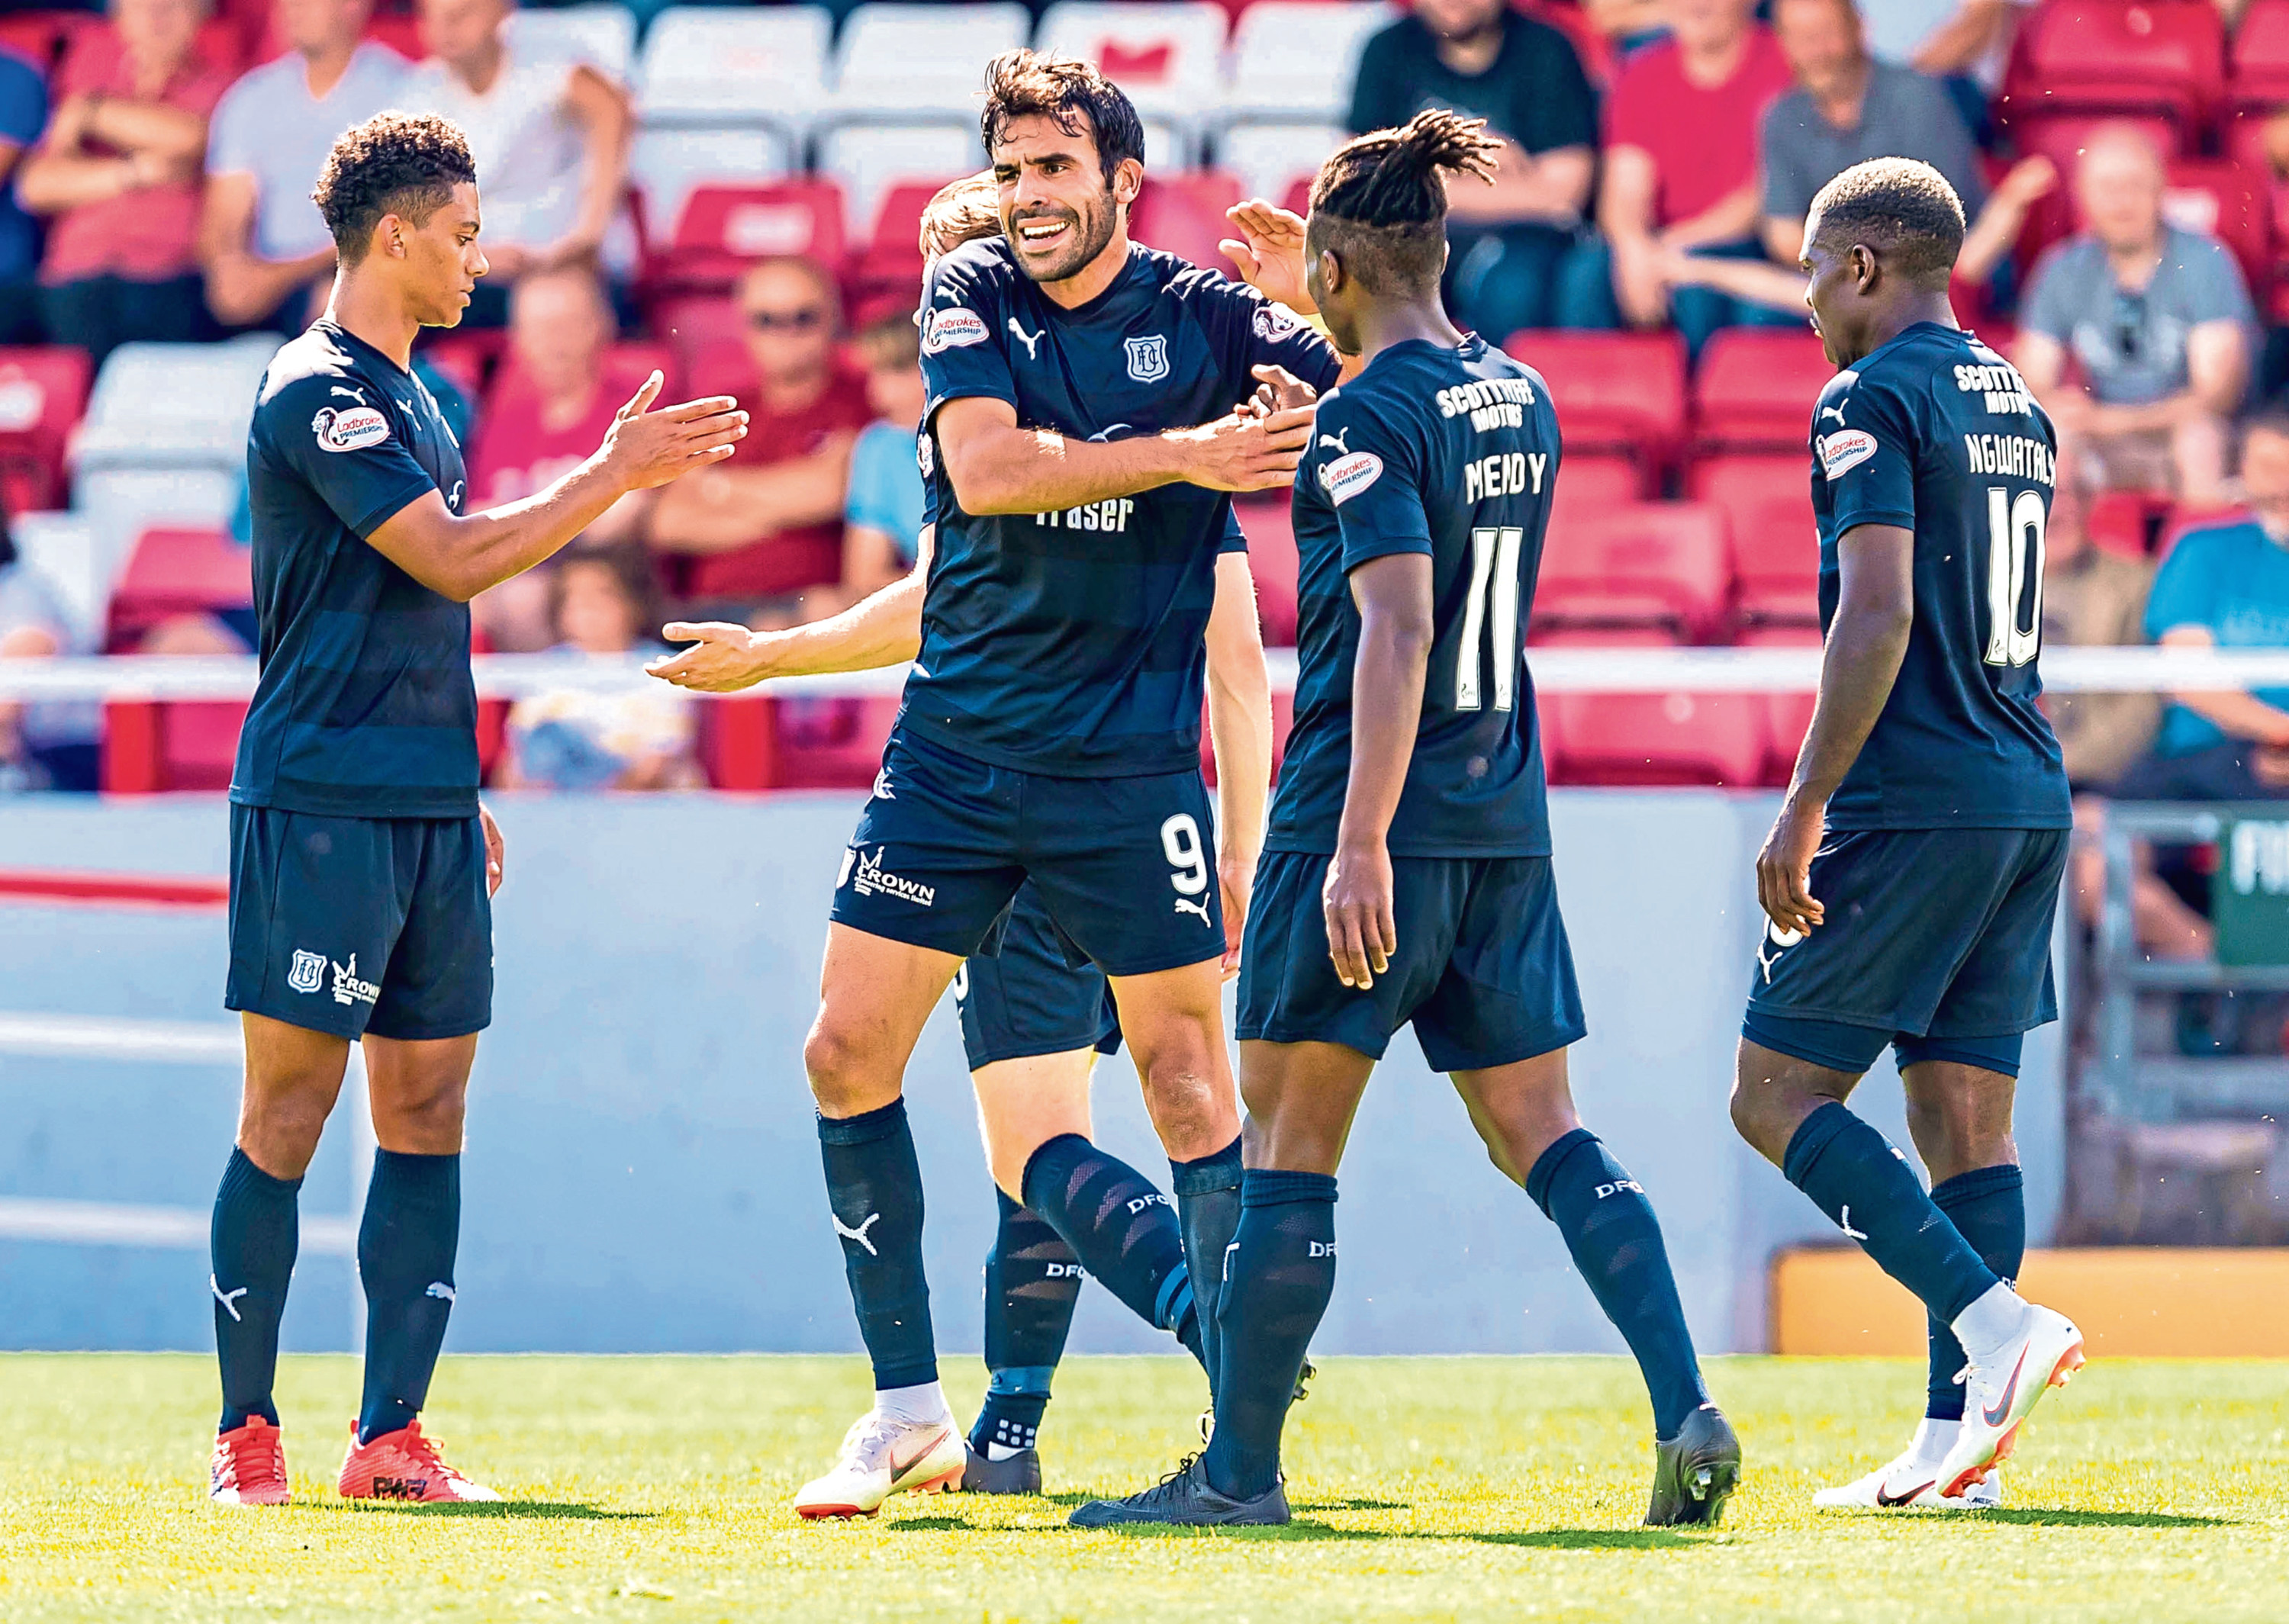 Dundee's Sofien Moussa celebrates scoring against Stirling Albion with his team mates